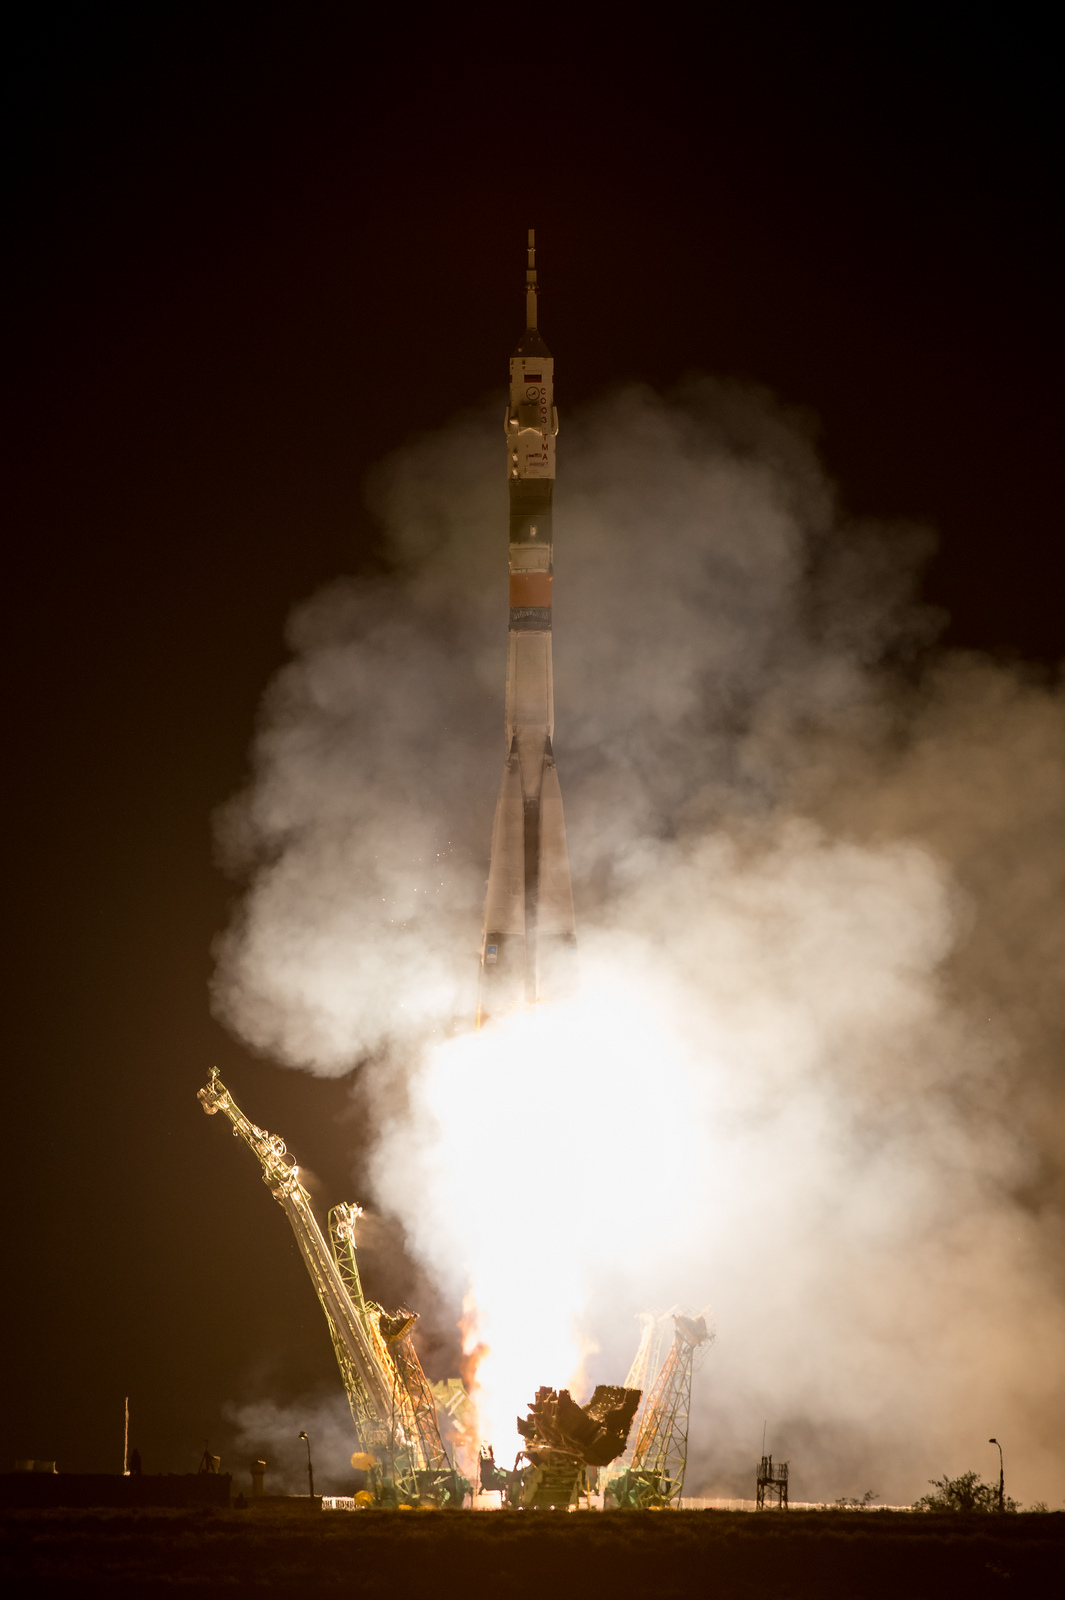 Expedition 36/37 Soyuz Rocket Launch